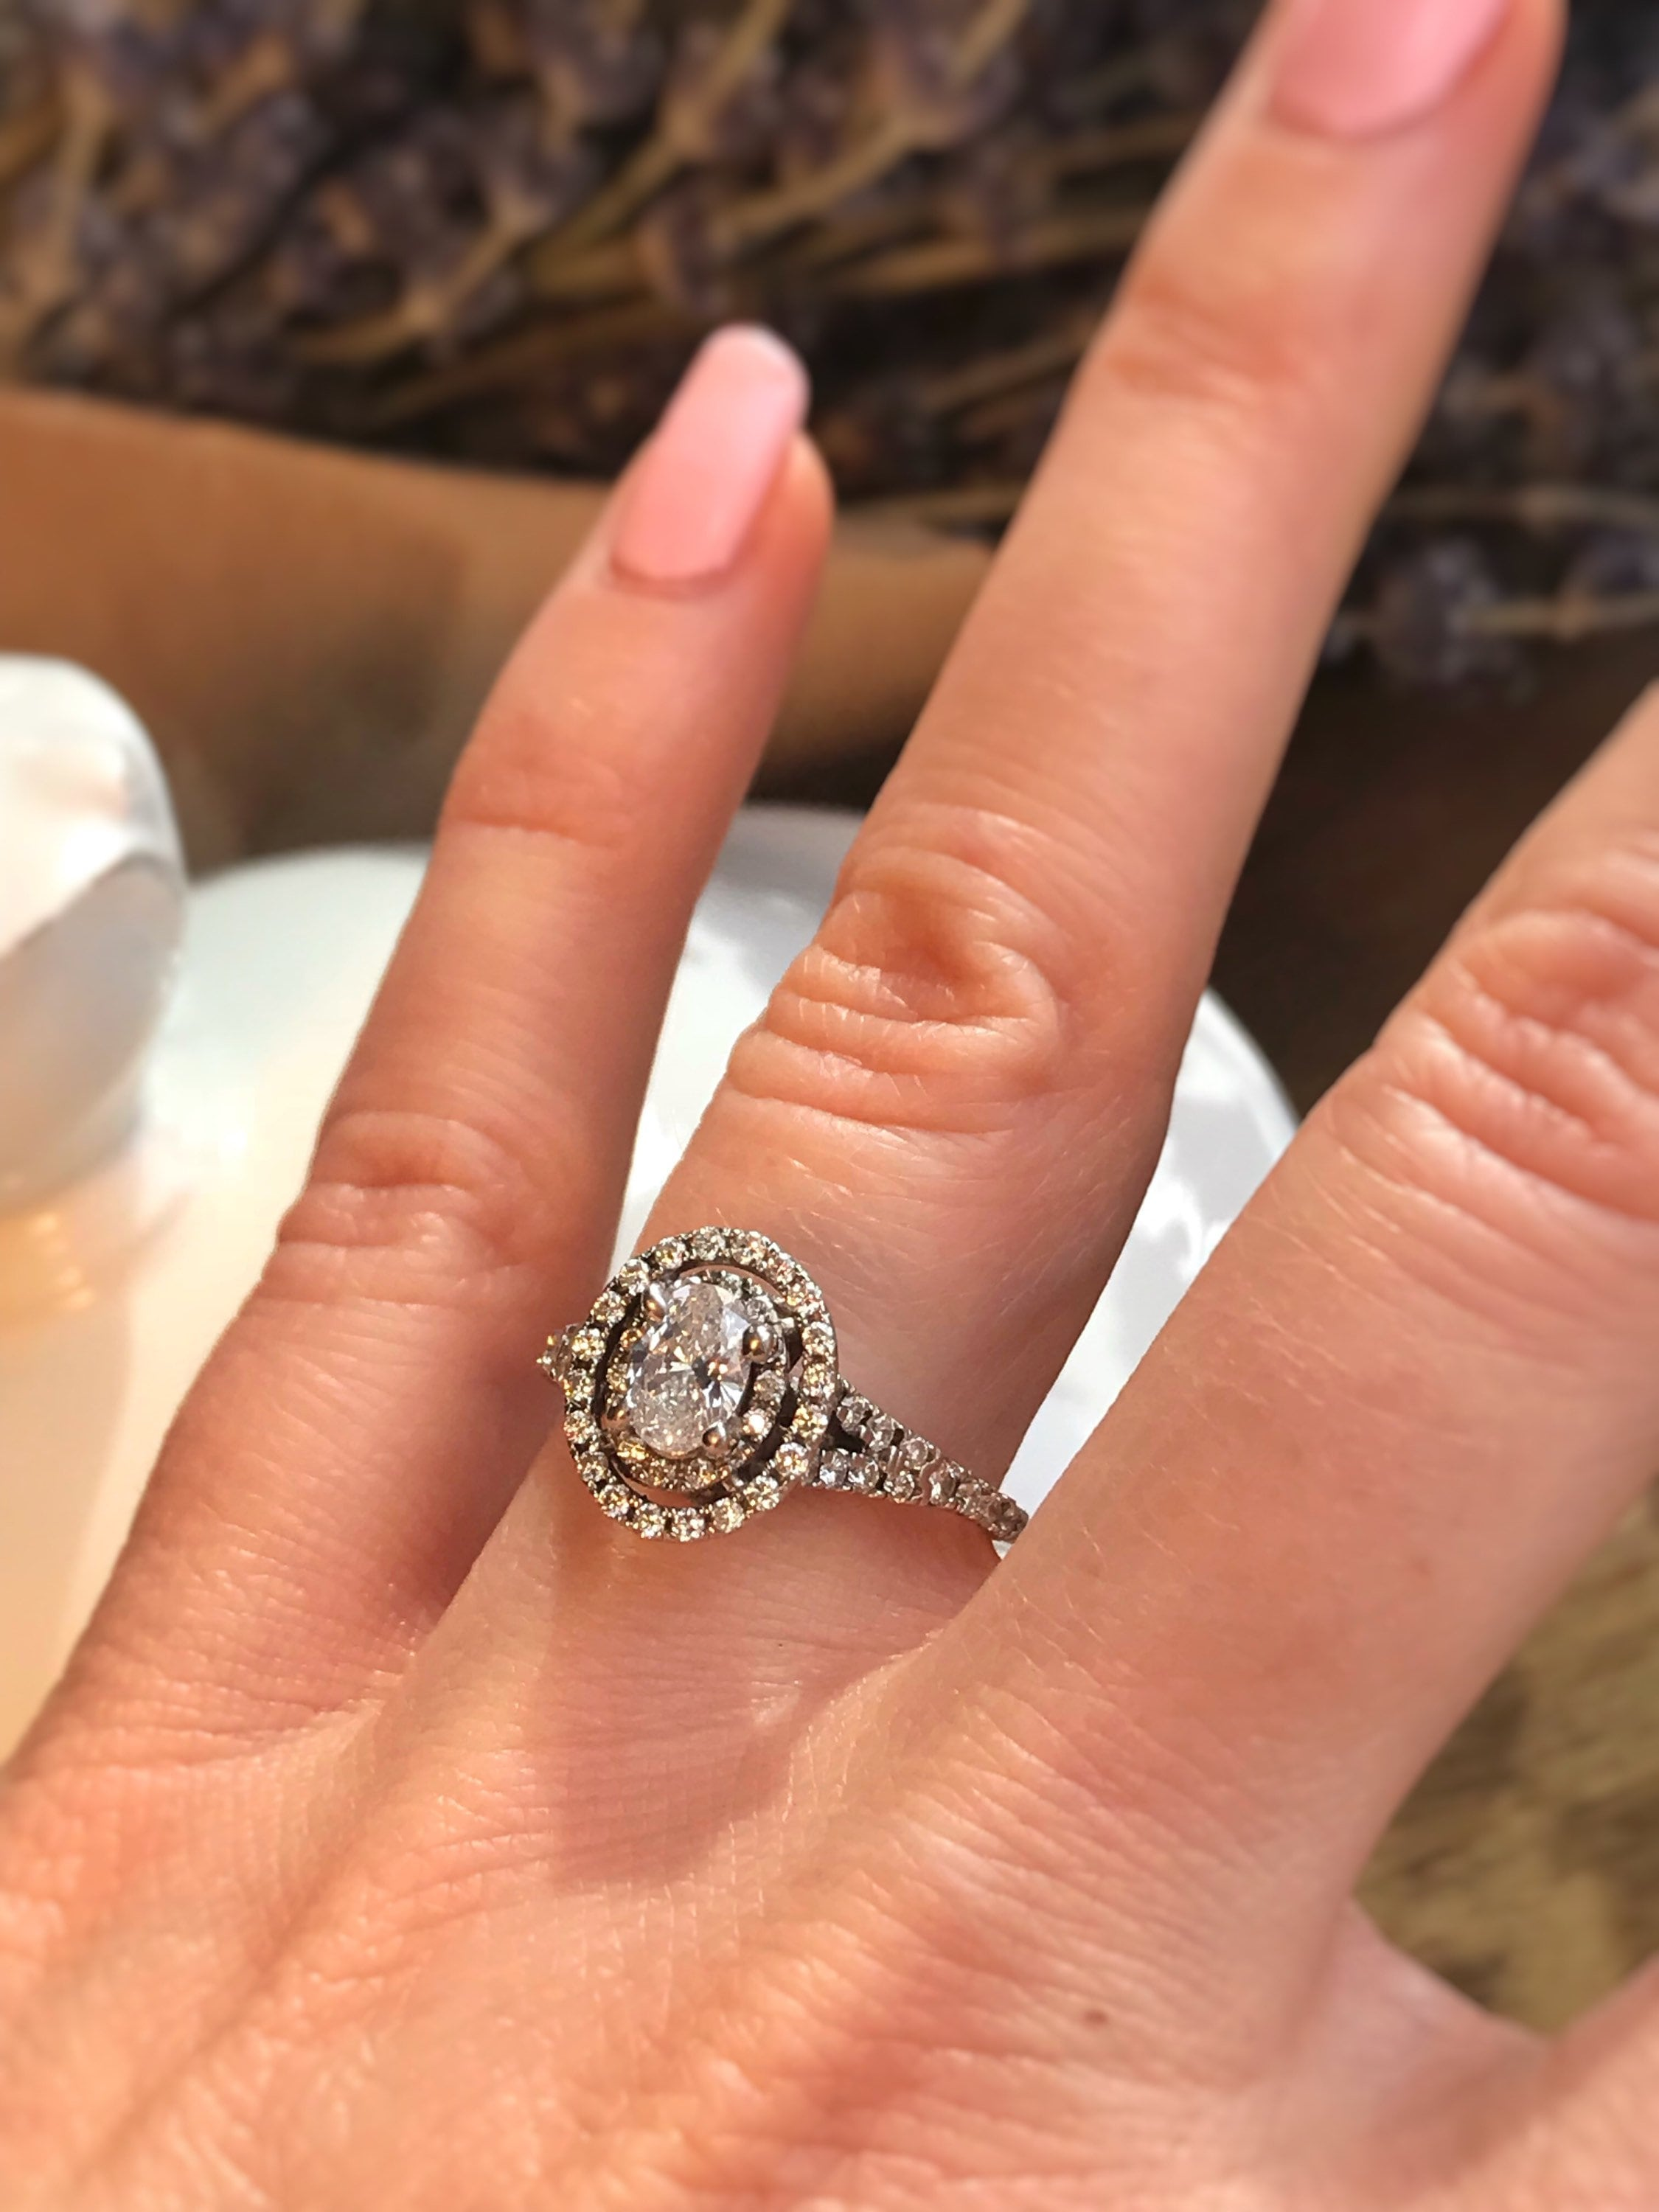 1 Carat Oval Diamond Engagement Ring. Offering Layaway.